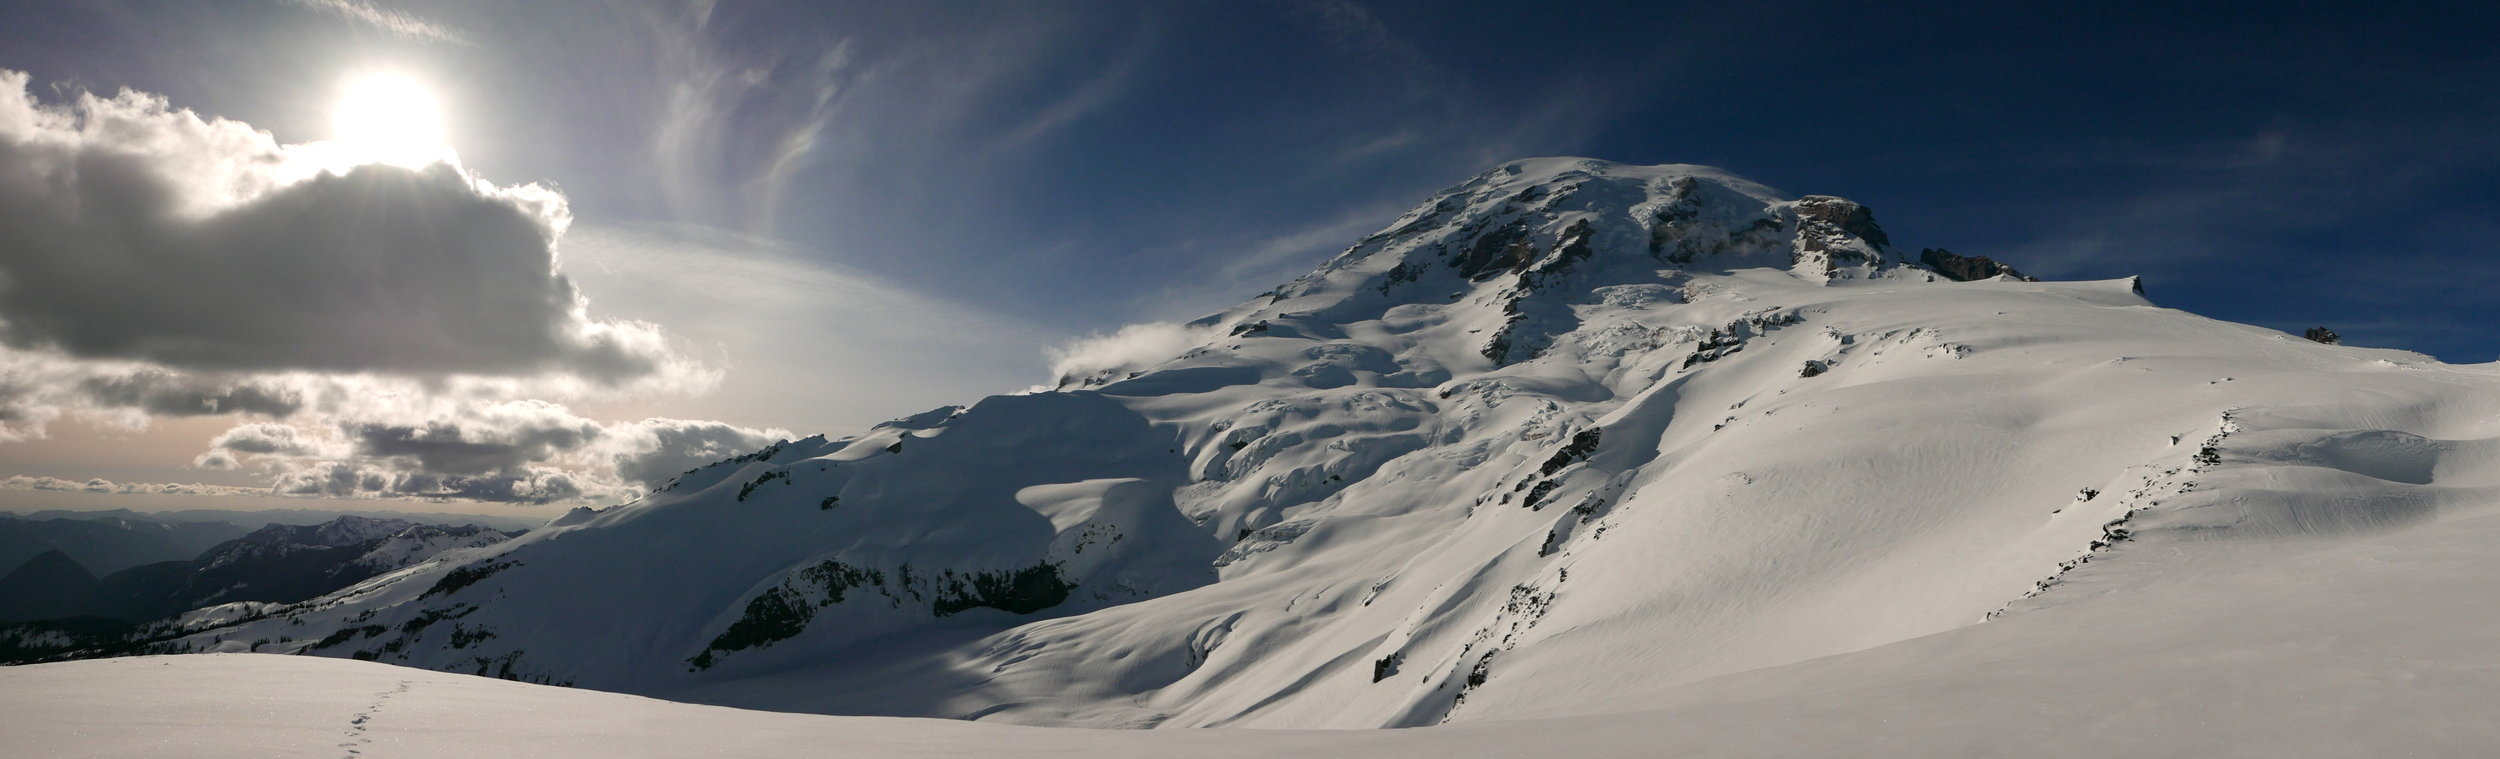 Muir snowfield to the right